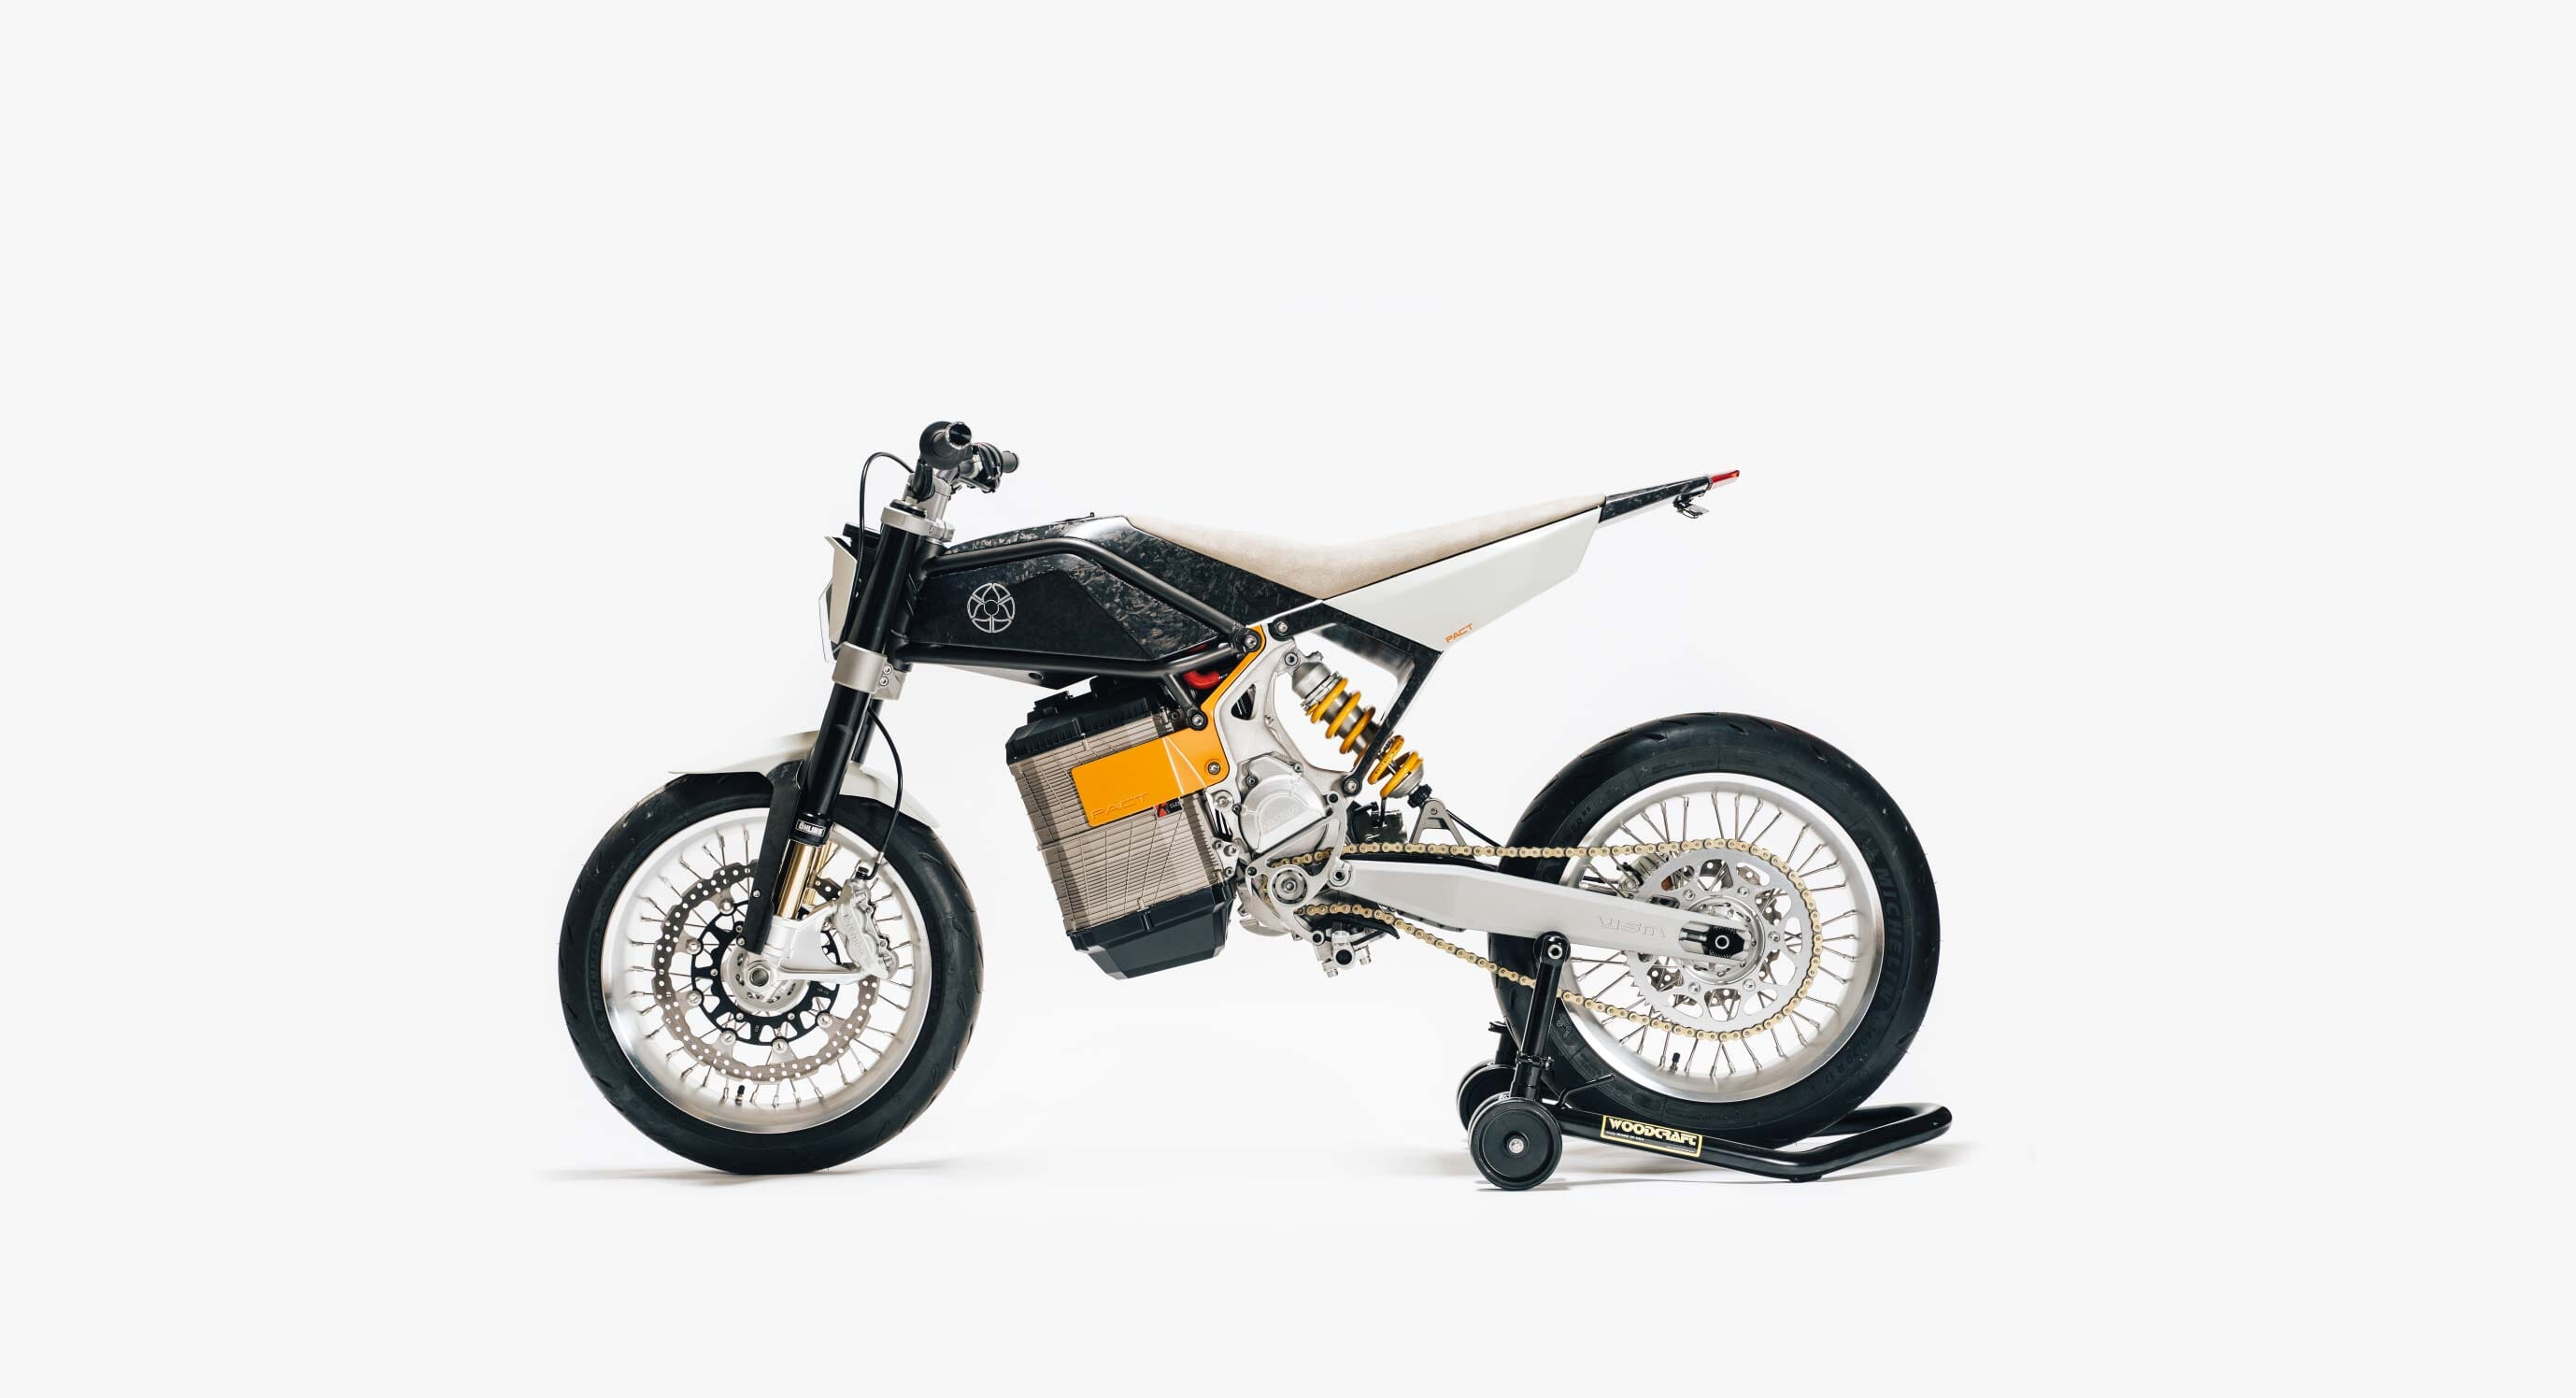 Walt Siegl's PACT is a new era for electric motorcycles